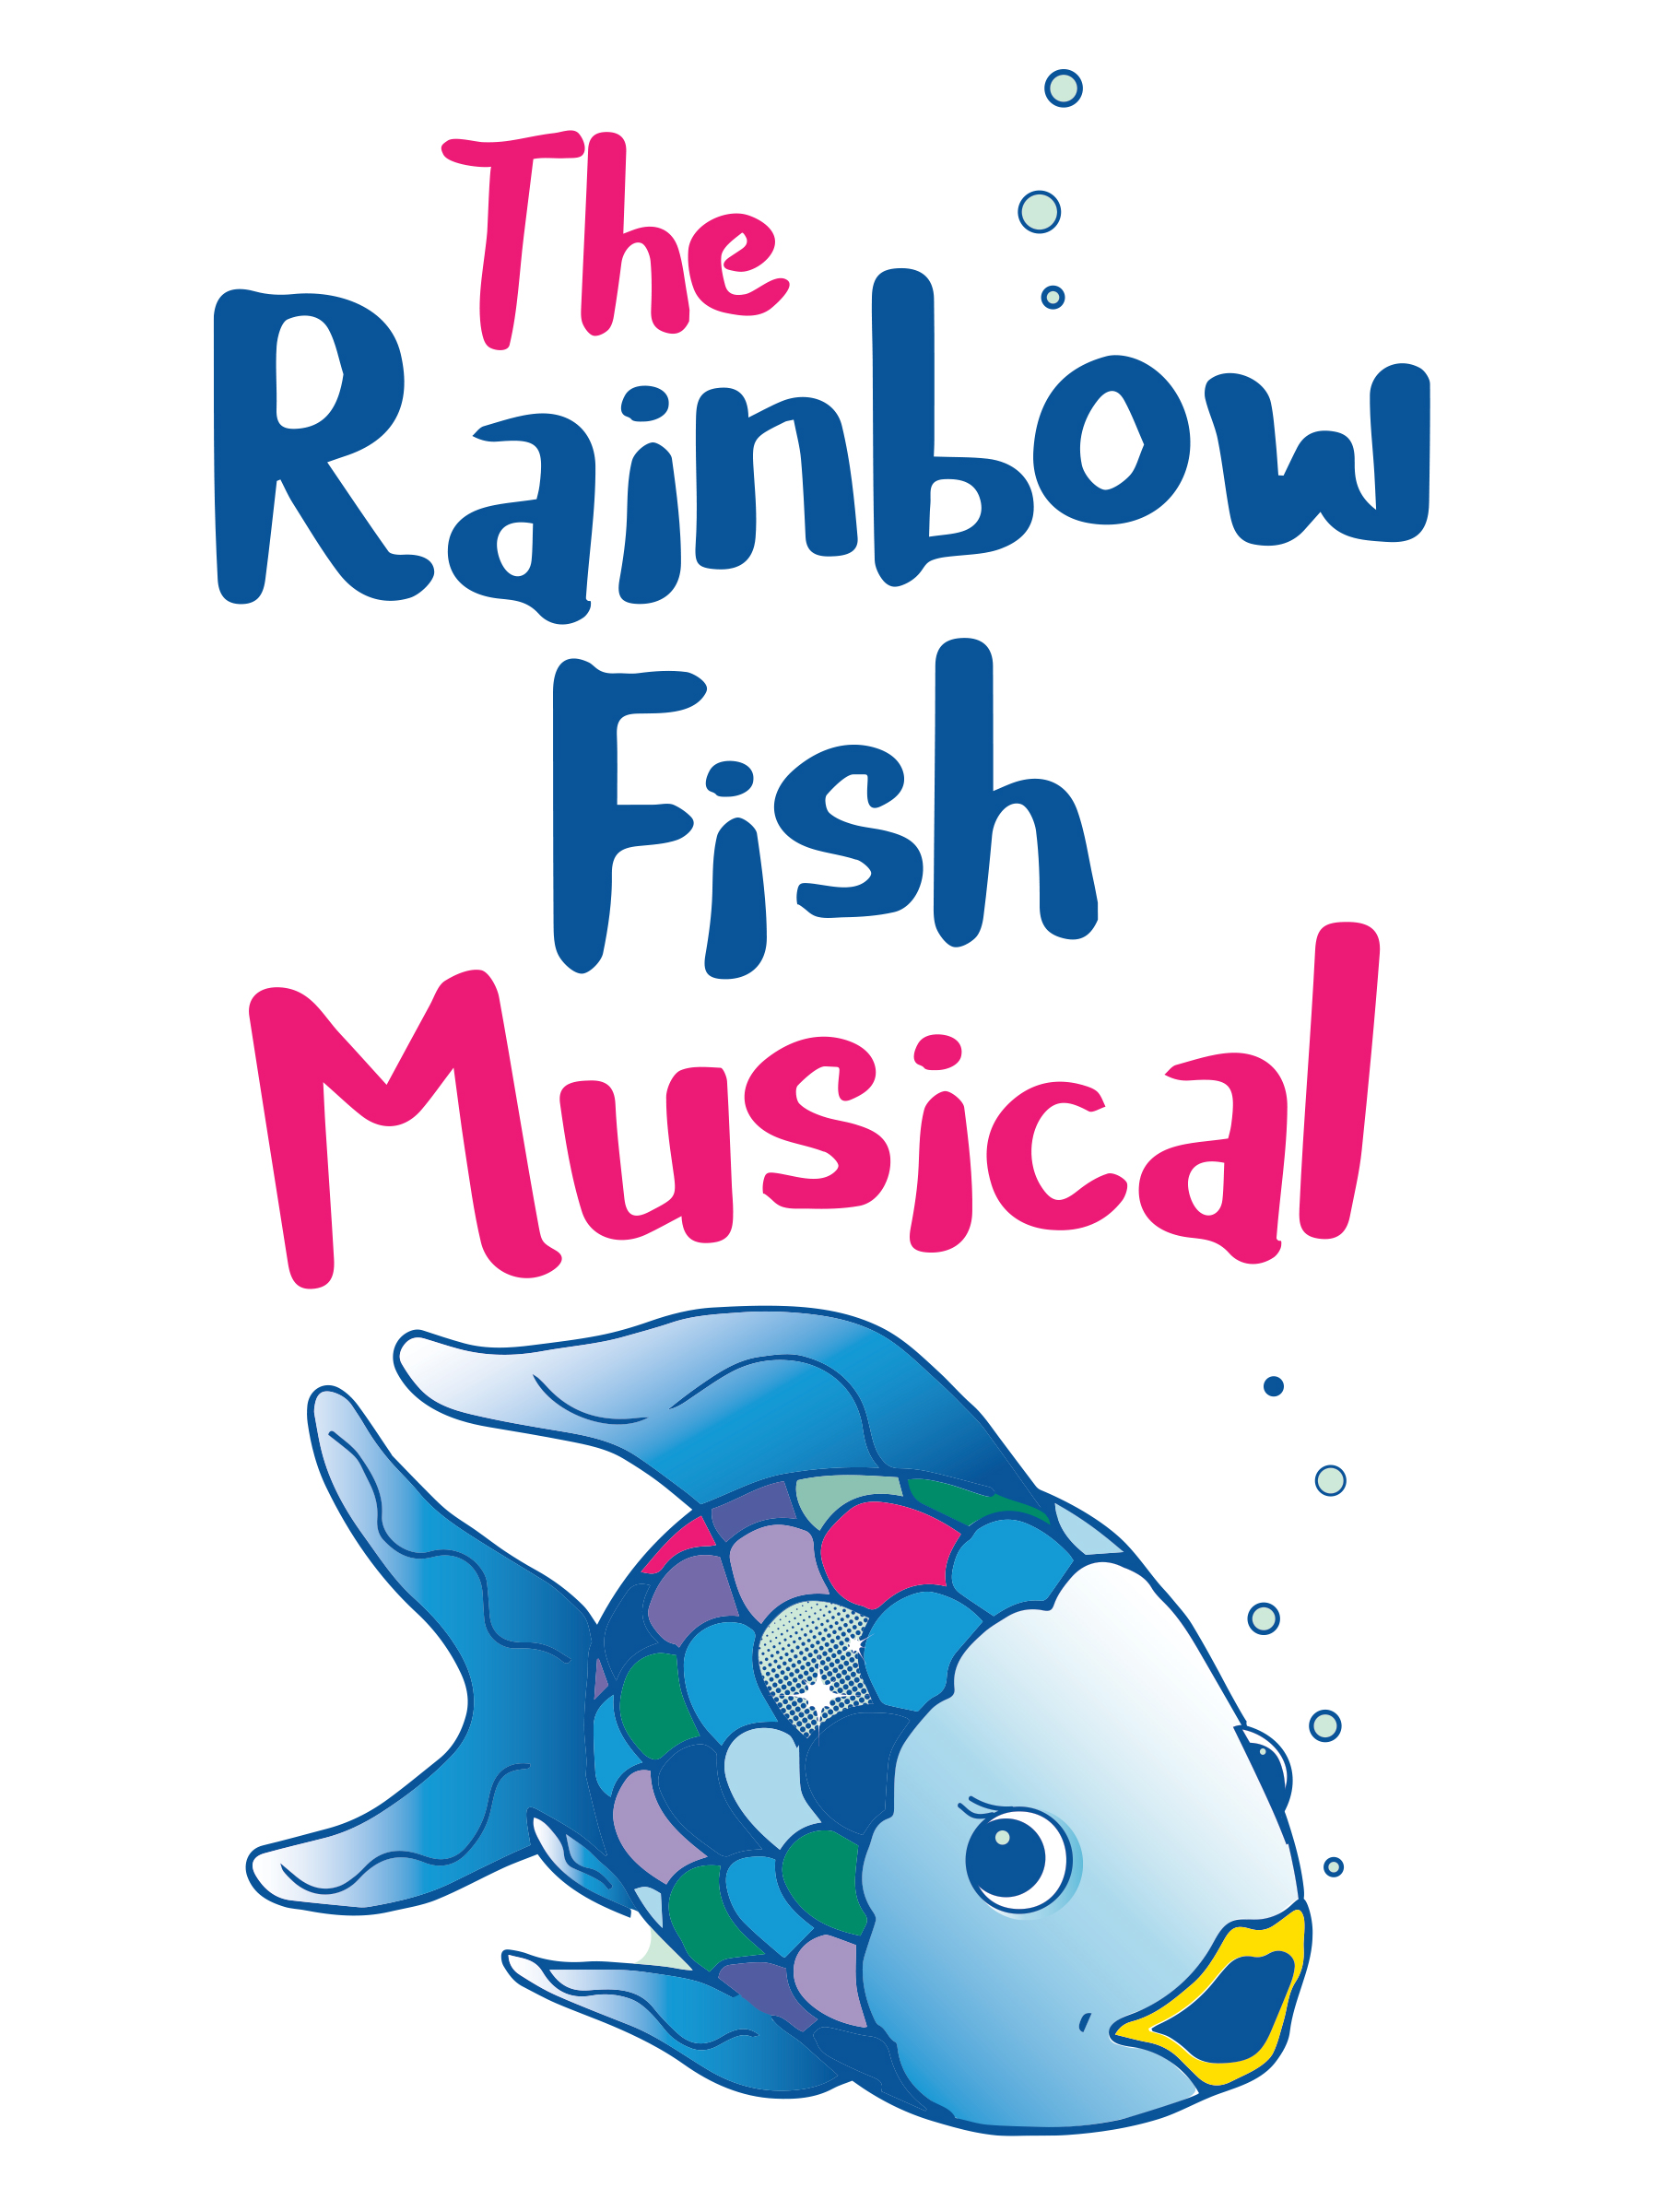 Rainbow-Fish-Musical-color fish and title.jpg